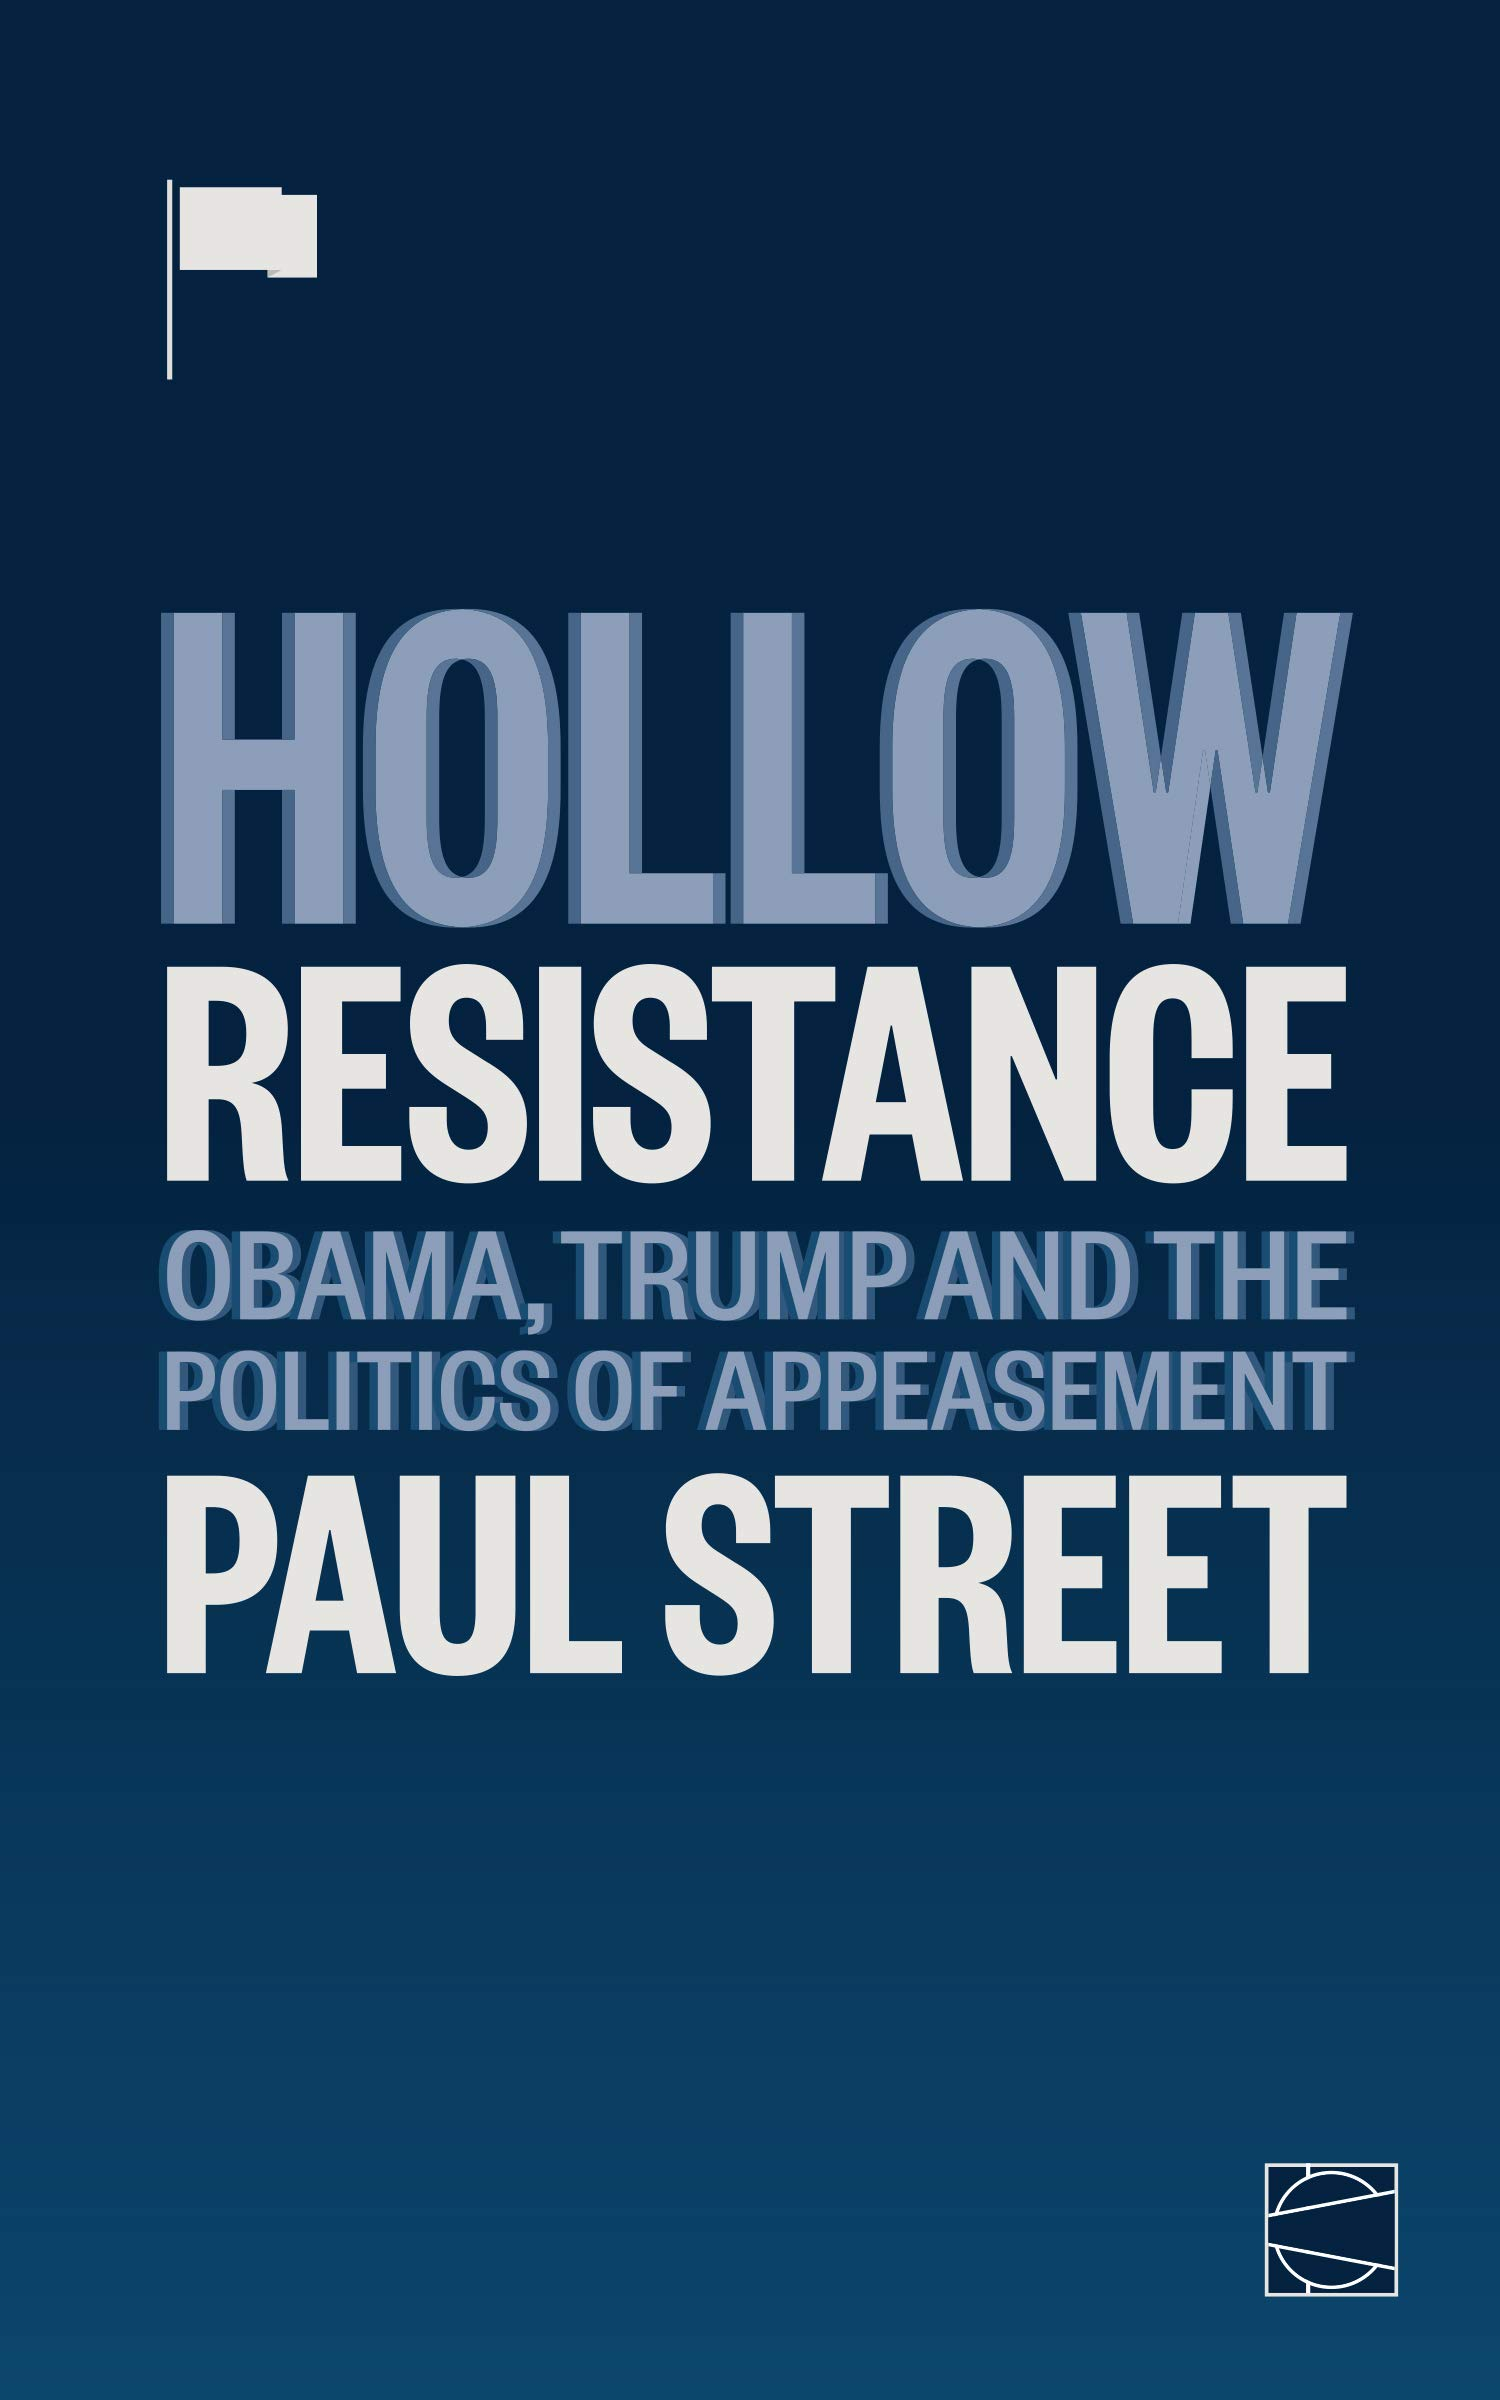 Hollow Resistance: Obama, Trump and the Politics of ...